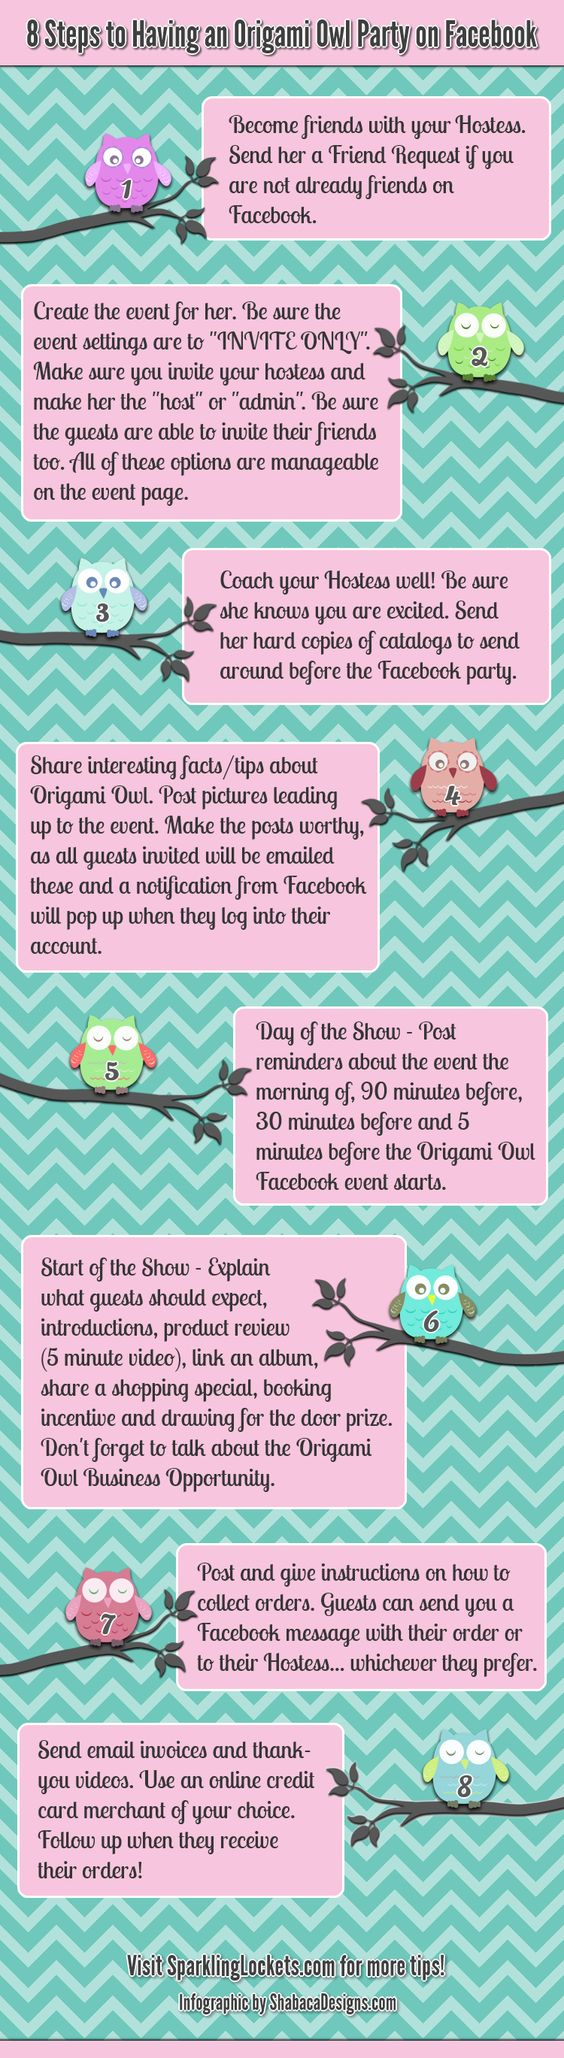 Direct Sales Infographic facebook party outline idea  - you can definitely do this with any business :)